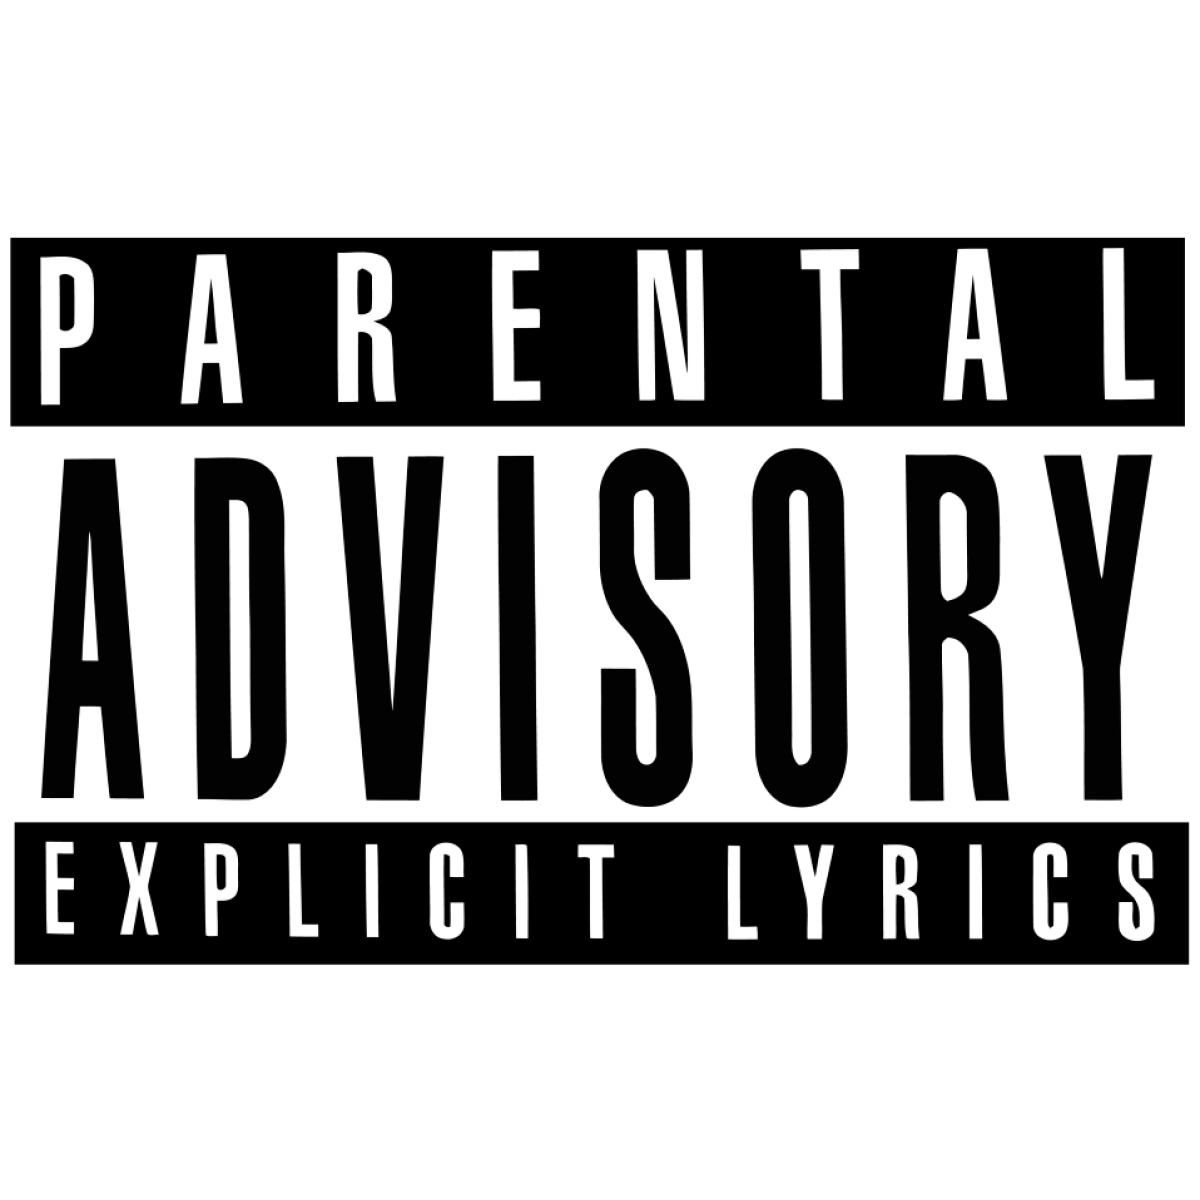 HD Parental Advisory Png